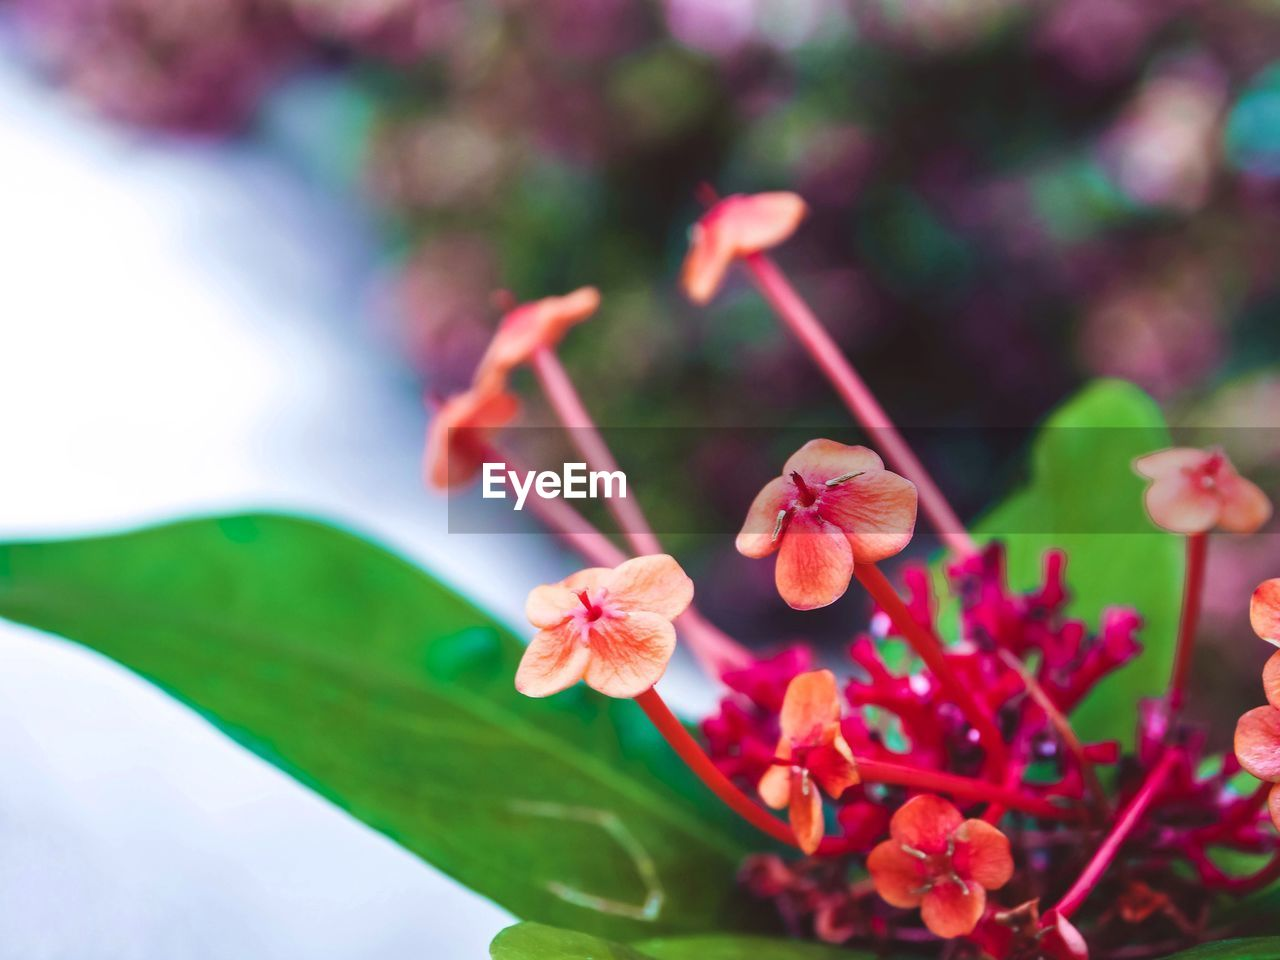 growth, beauty in nature, freshness, fragility, nature, flower, petal, focus on foreground, day, no people, plant, outdoors, close-up, flower head, blooming, leaf